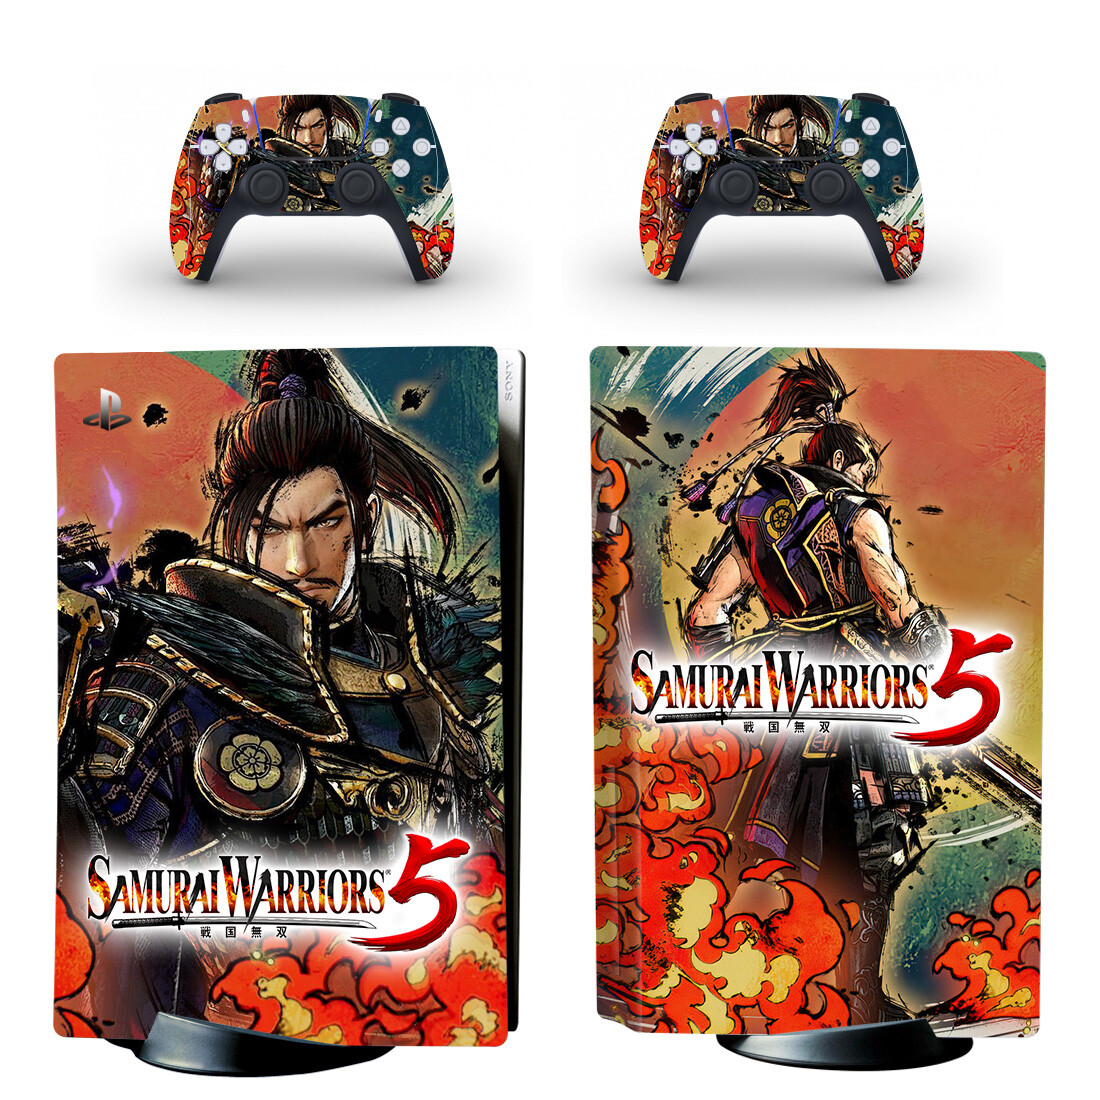 Samurai Warriors 5 Skin Sticker For PlayStation 5 And Controllers